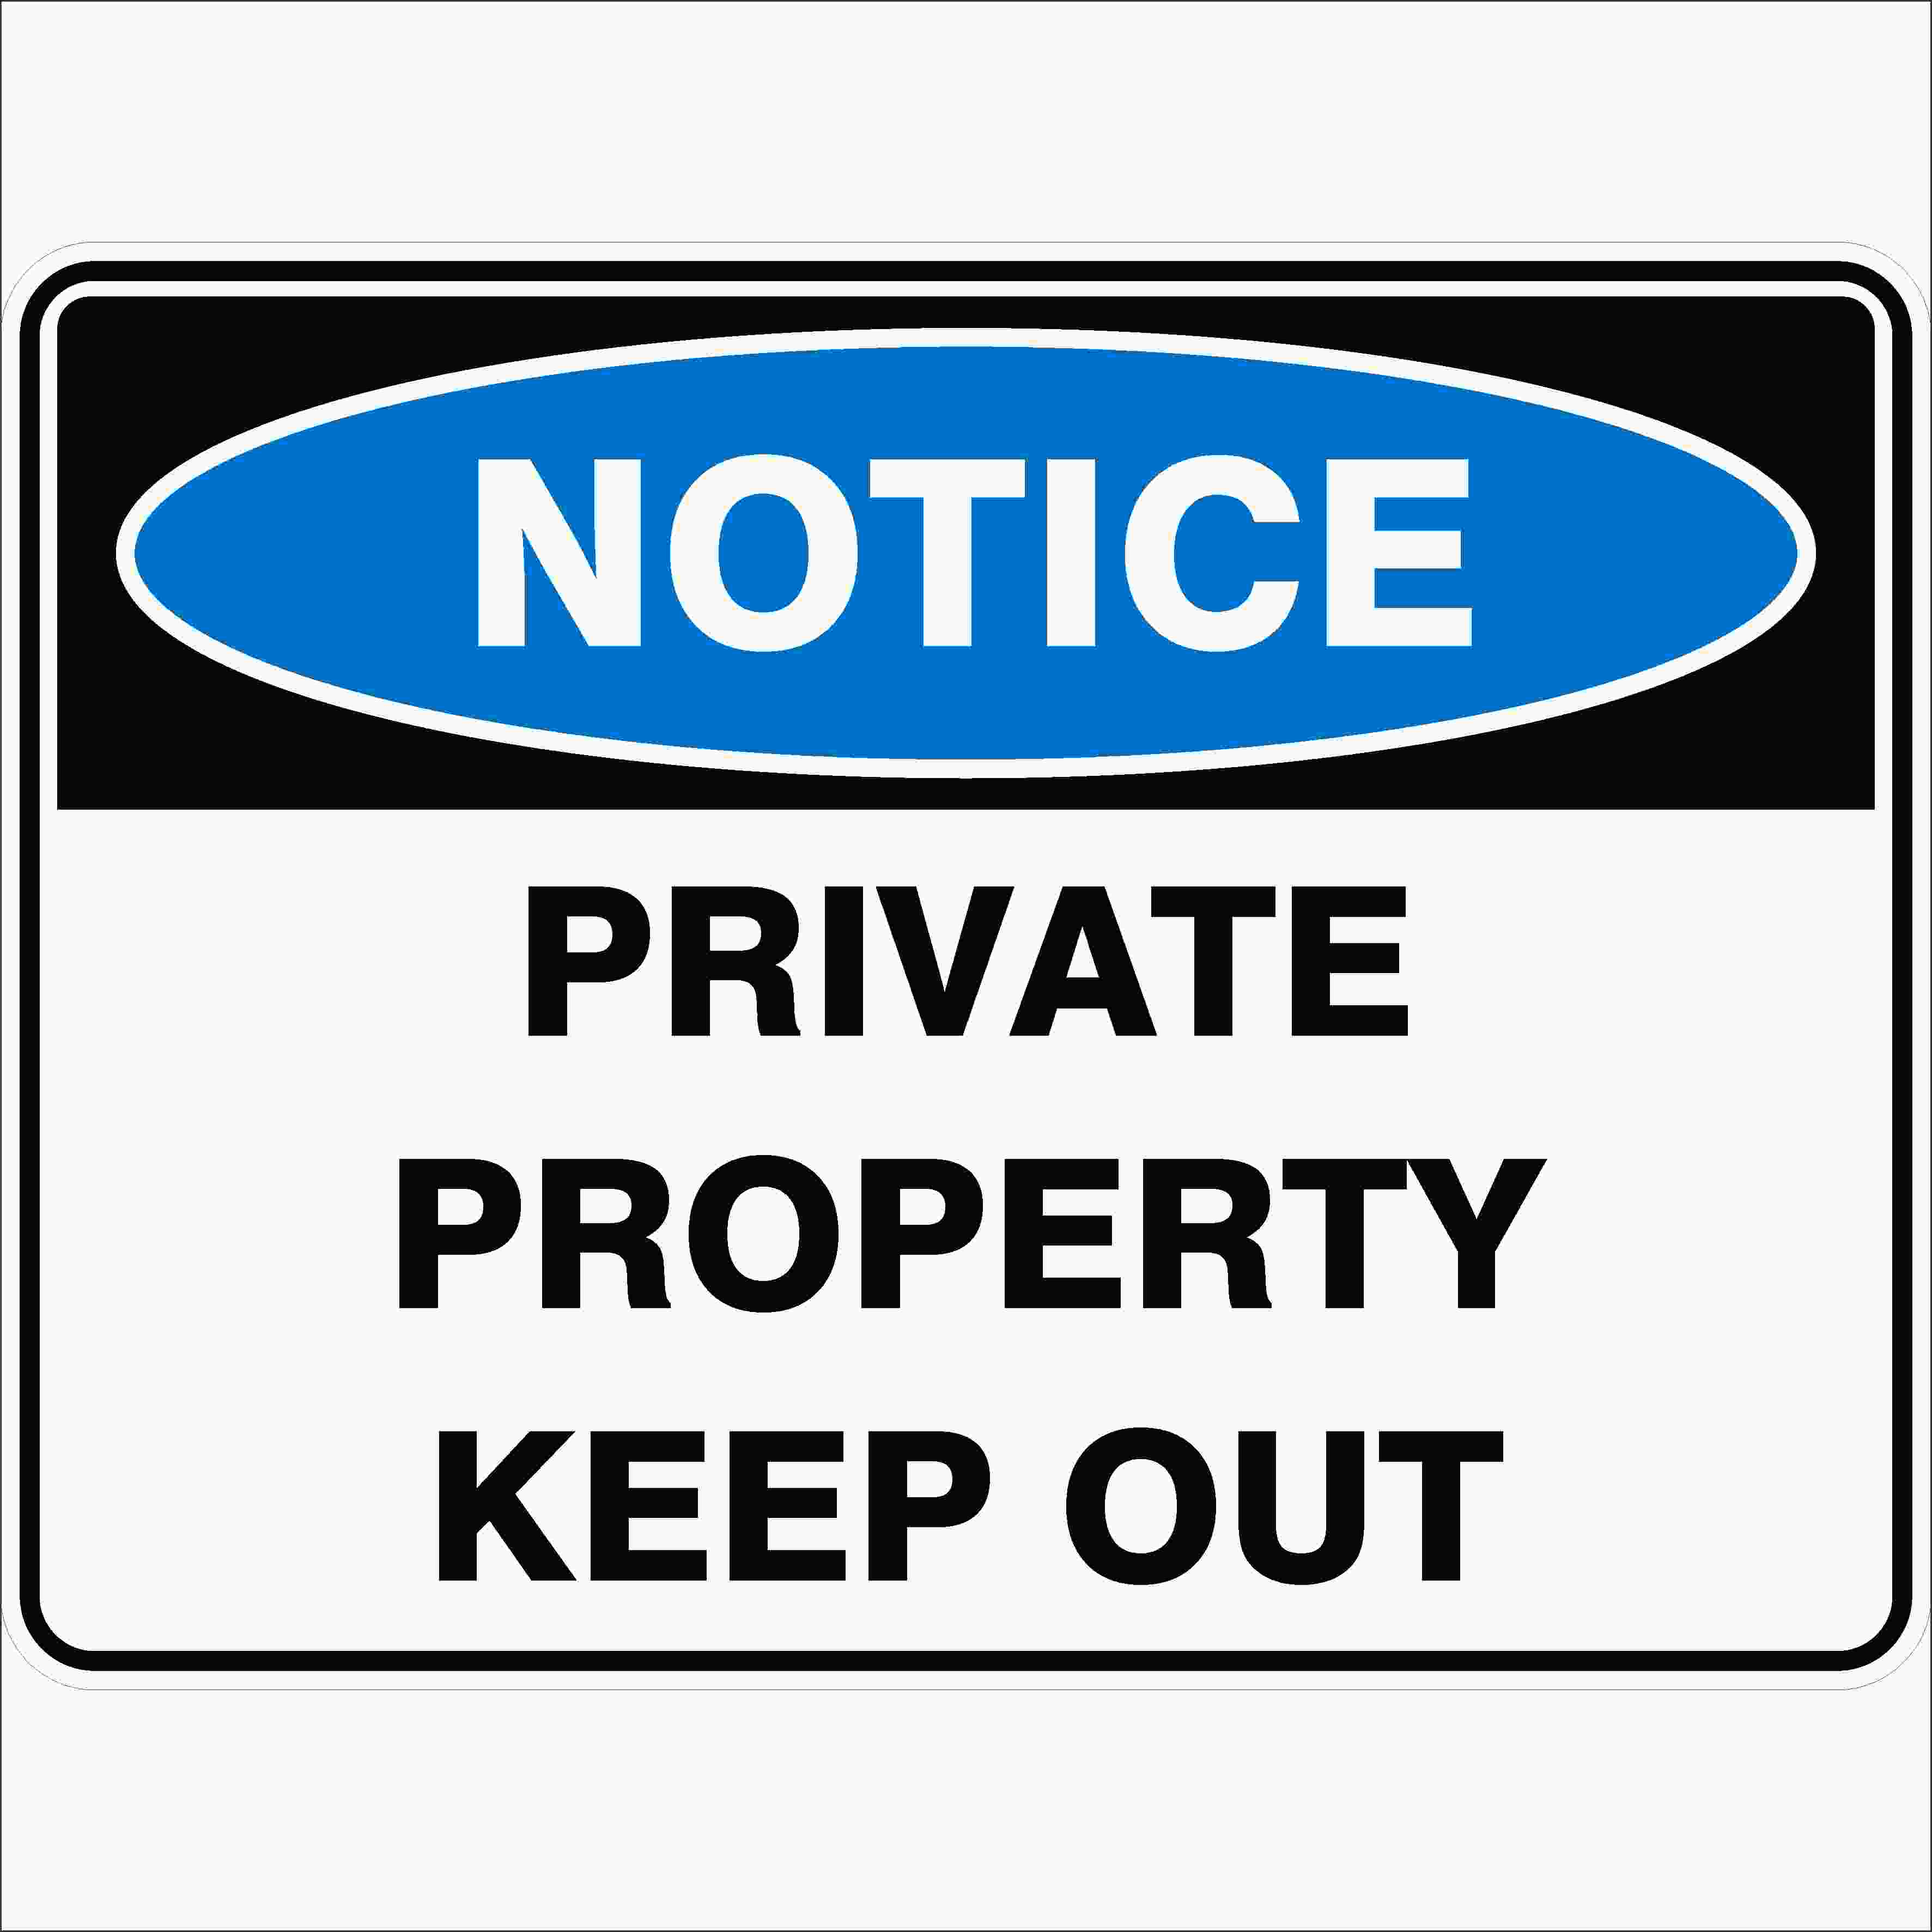 Notice Signs PRIVATE PROPERTY KEEP OUT